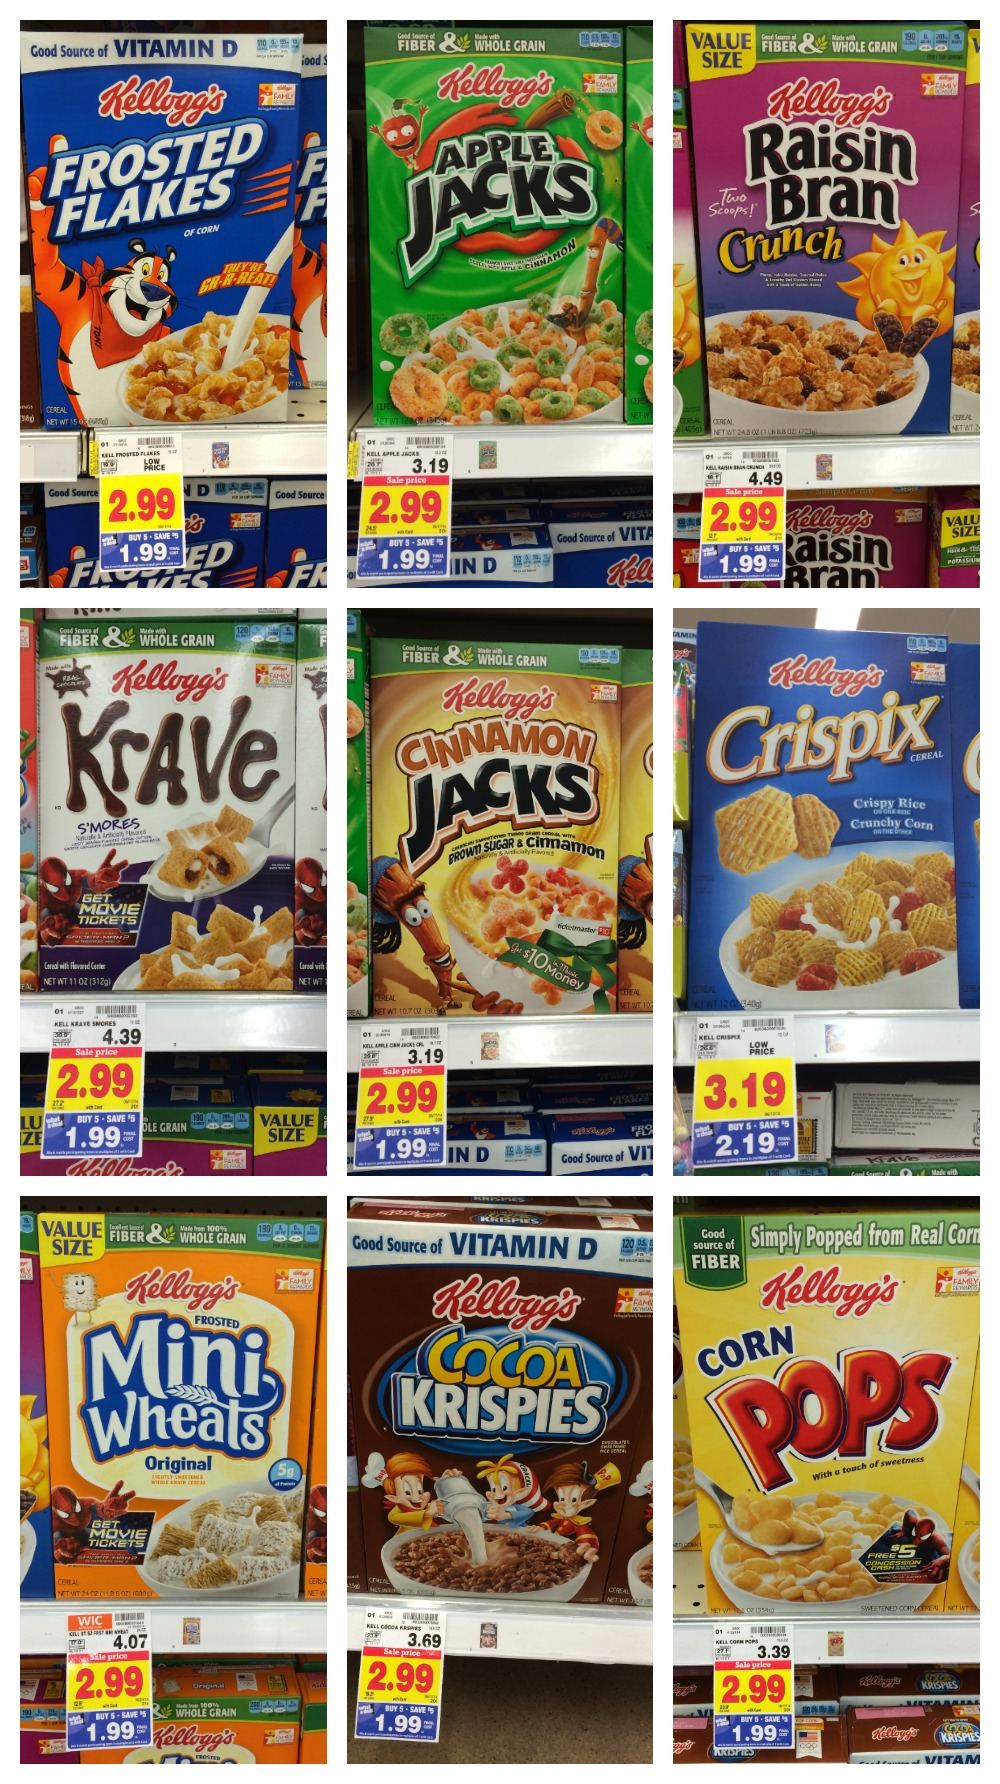 Kellogg's ® Brands. Explore all of the brands and products Kellogg's ® offers. Collect points on your purchases and redeem them for awesome rewards.